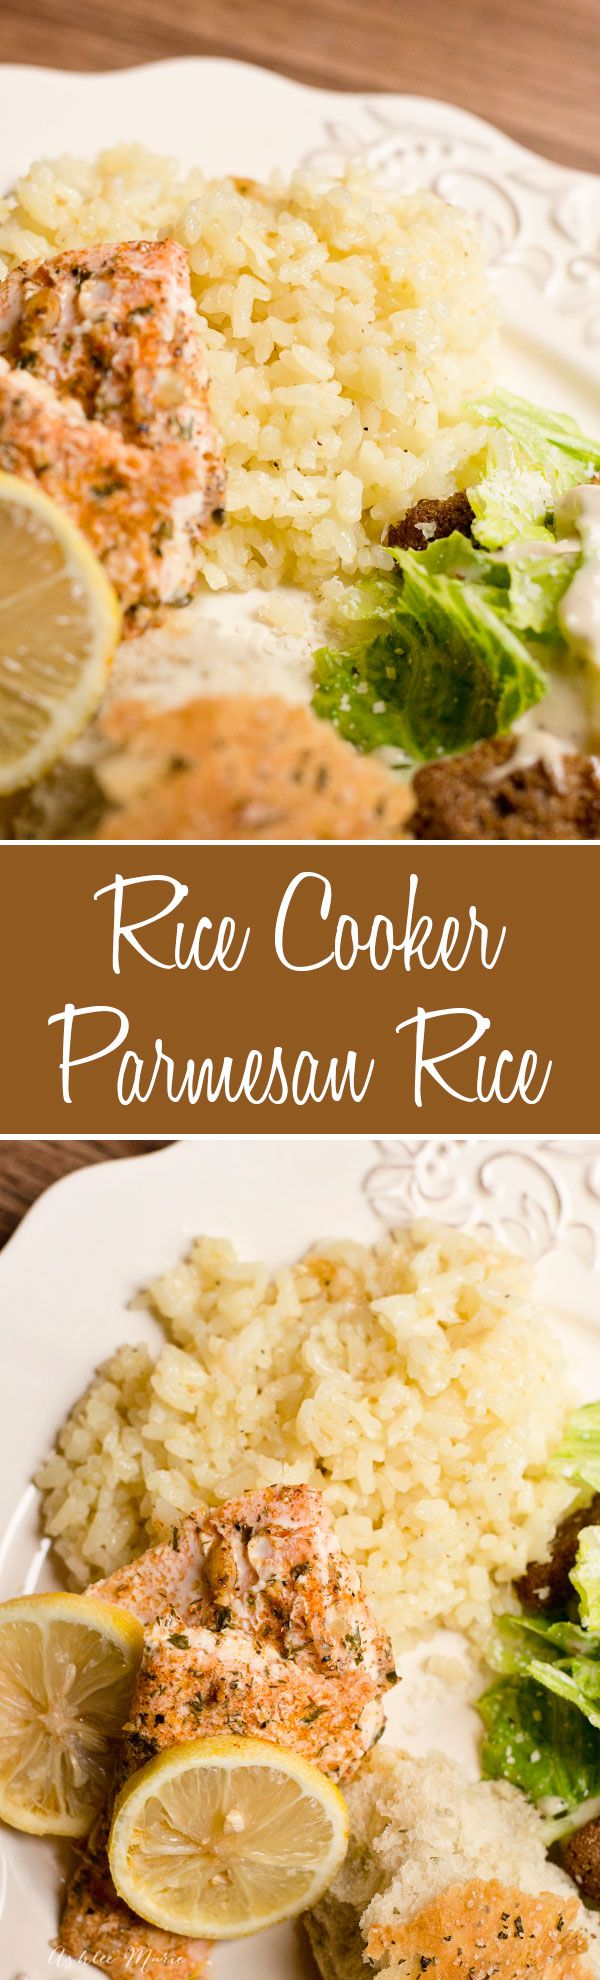 easy and delicious parmesan rice.  Its cheesy goodness made with butter, garlic and onions,